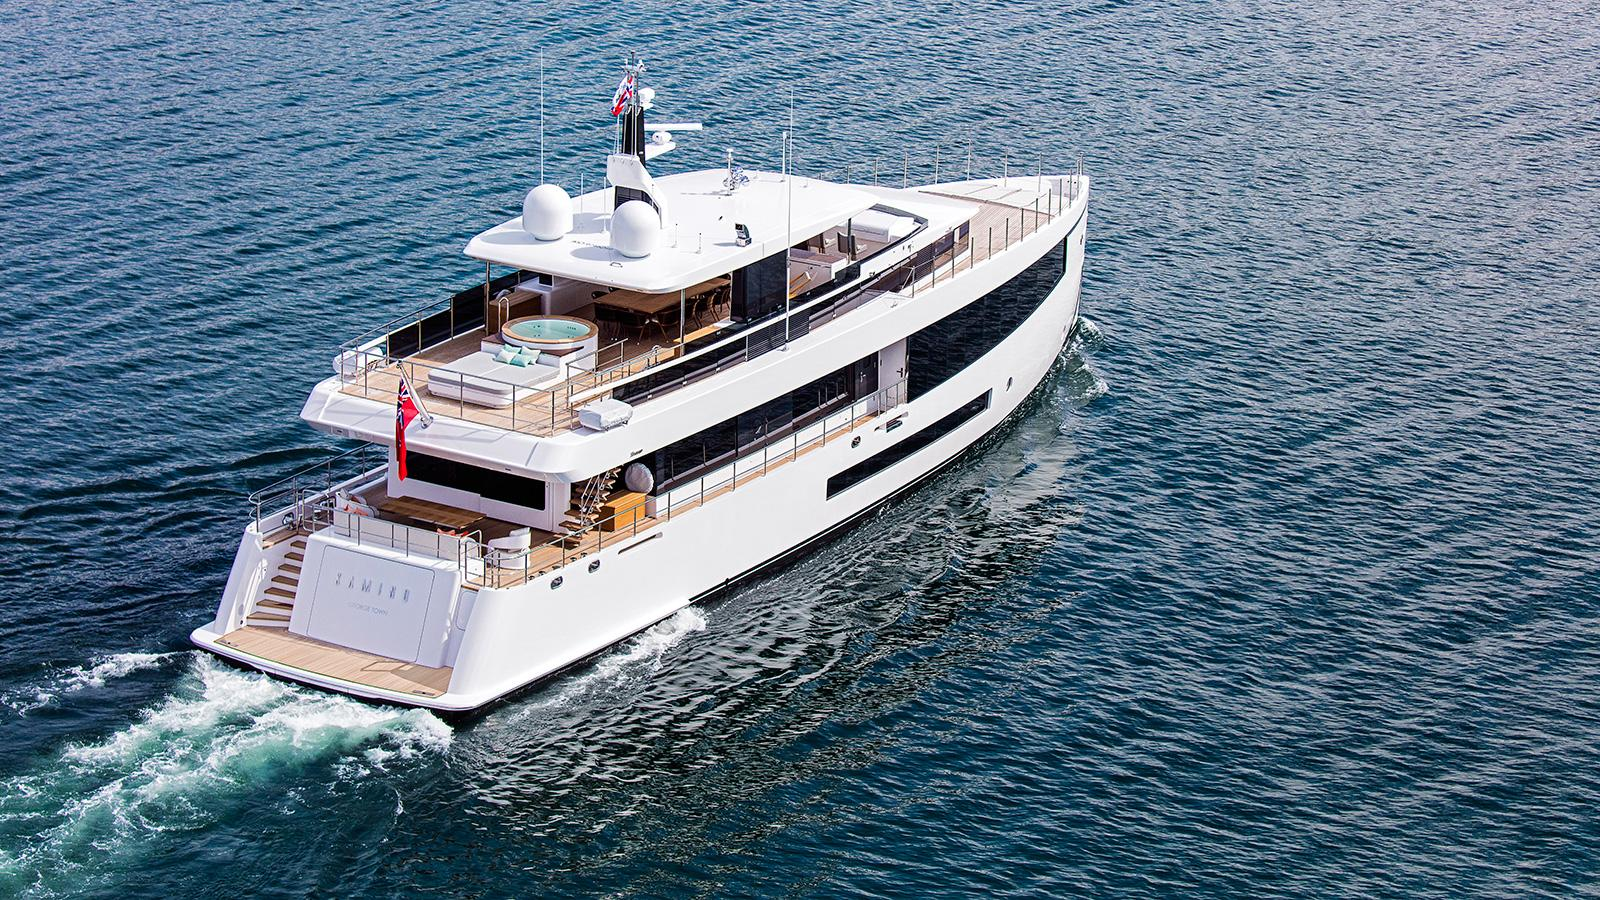 Kamino-super-yacht-feadship-2016-34-metres-aerial-view